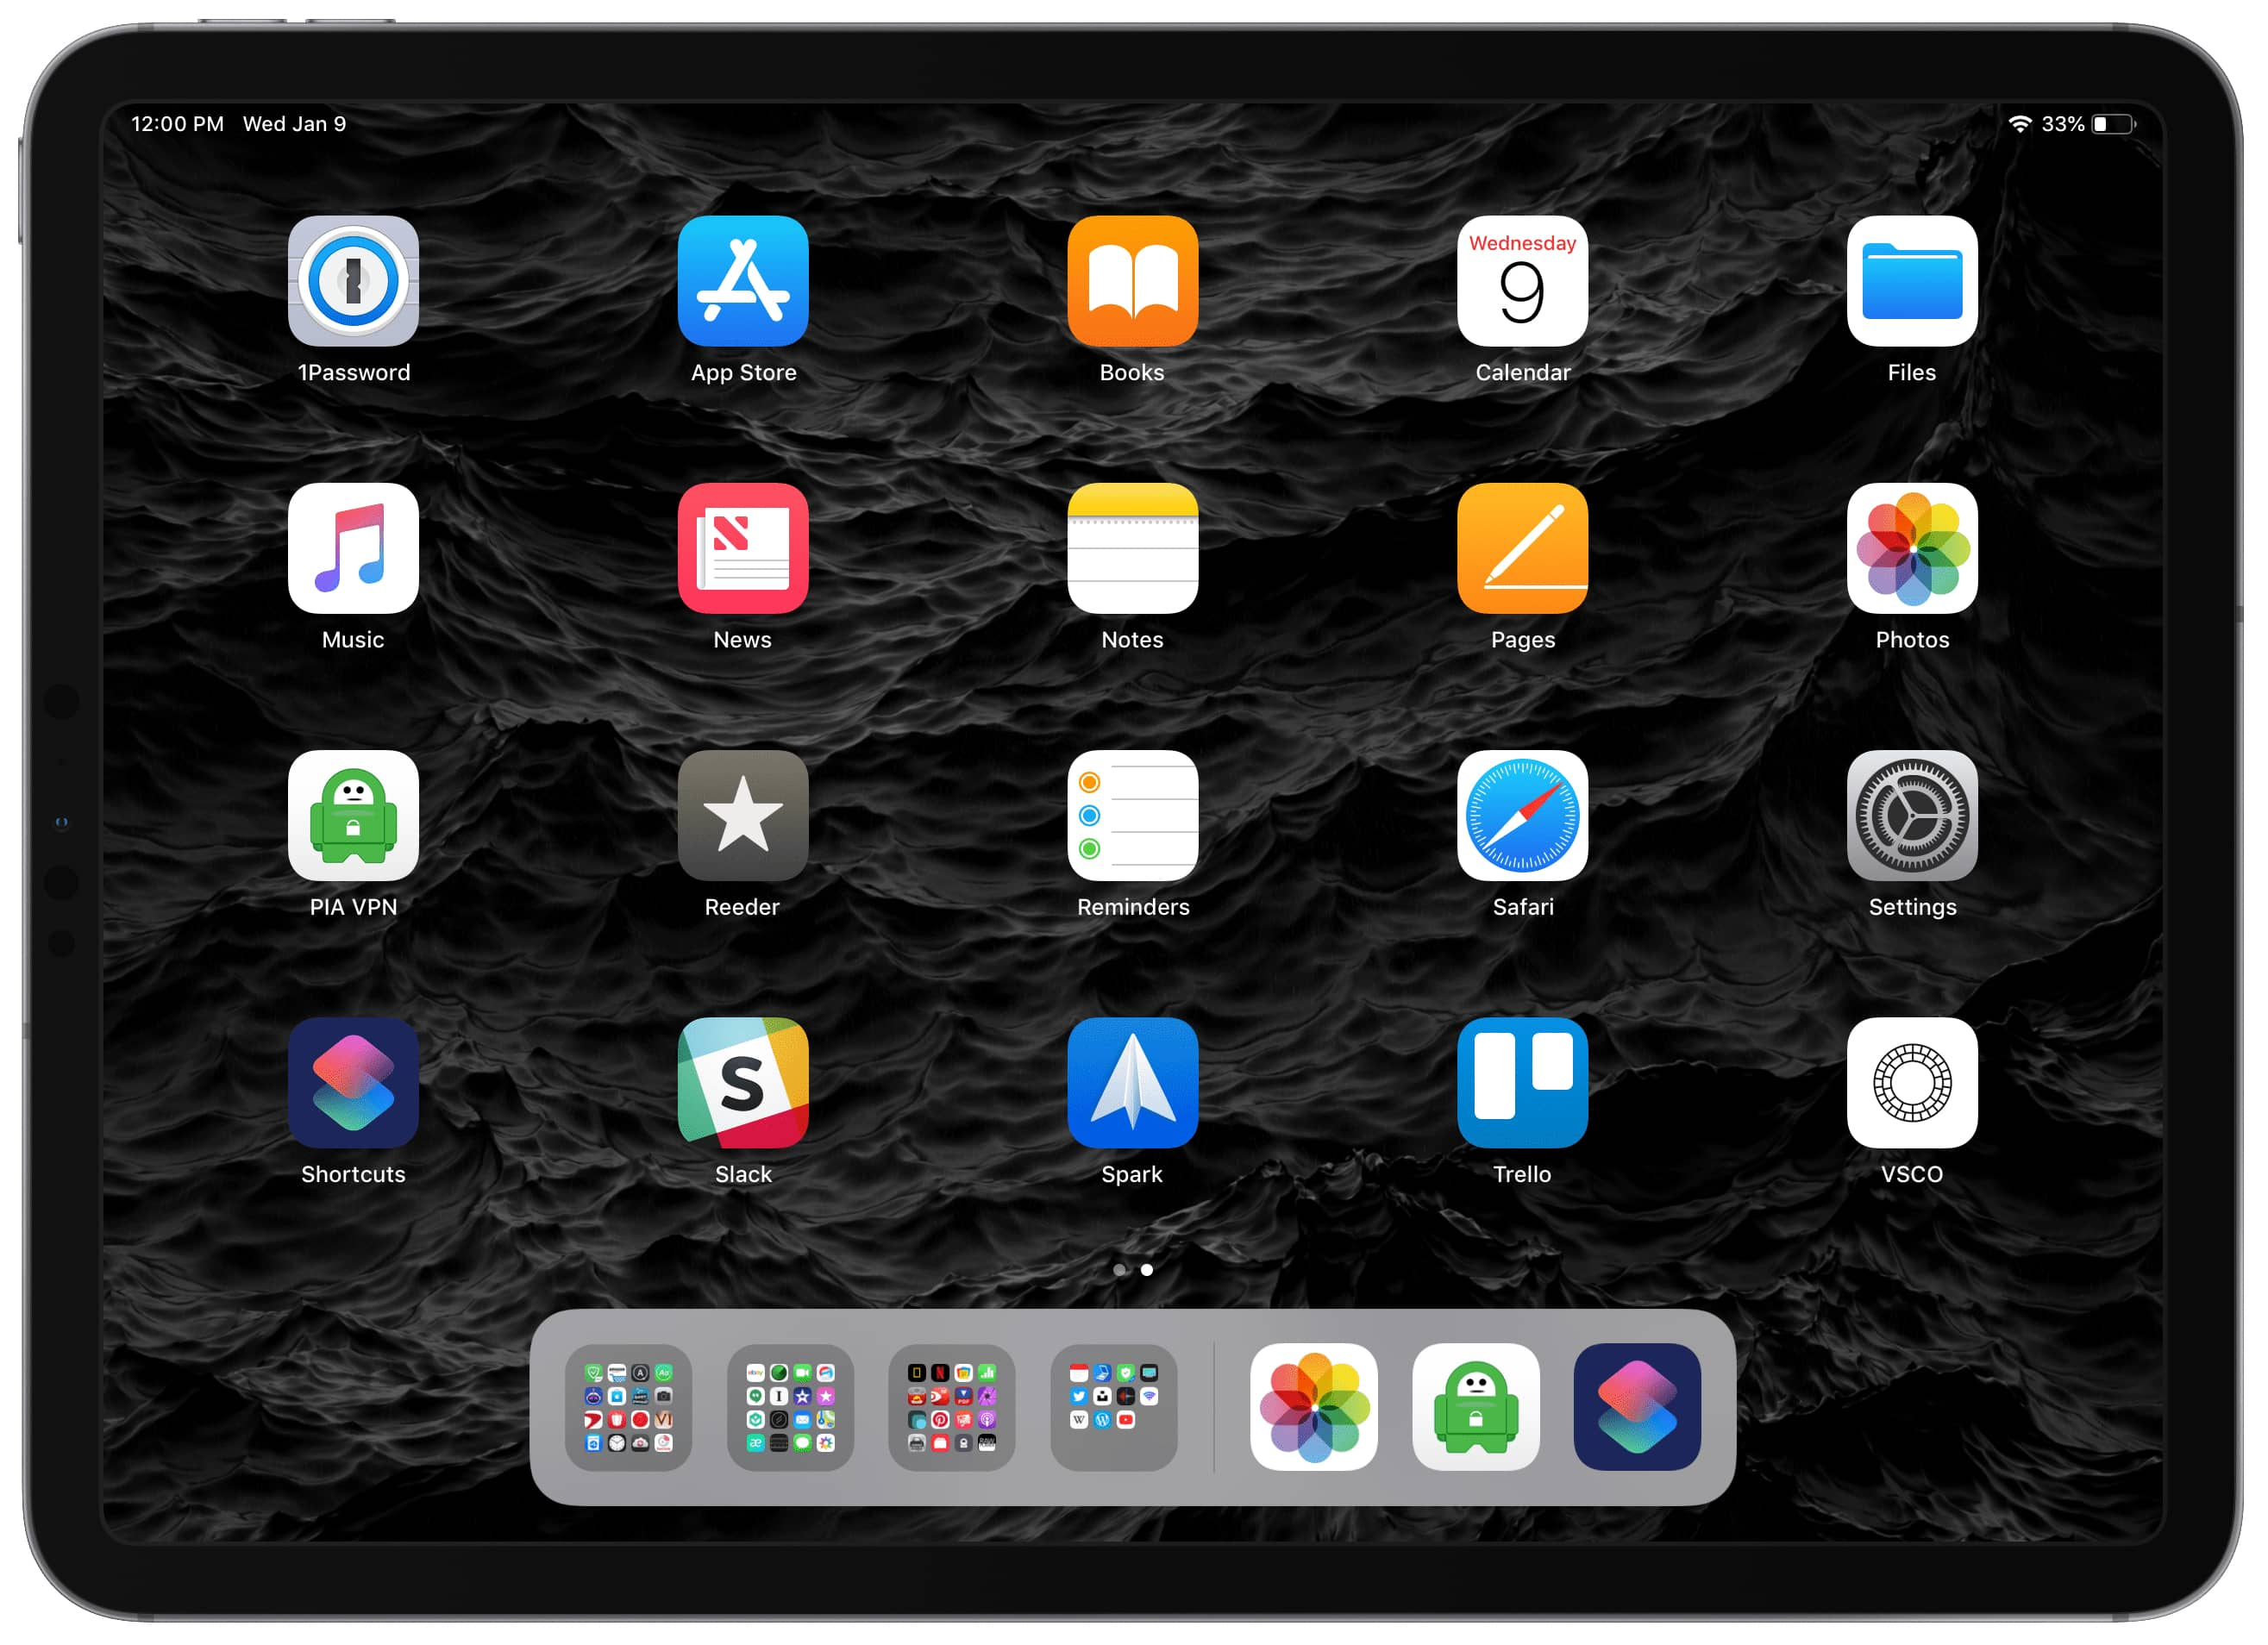 image of iPad pro home screen